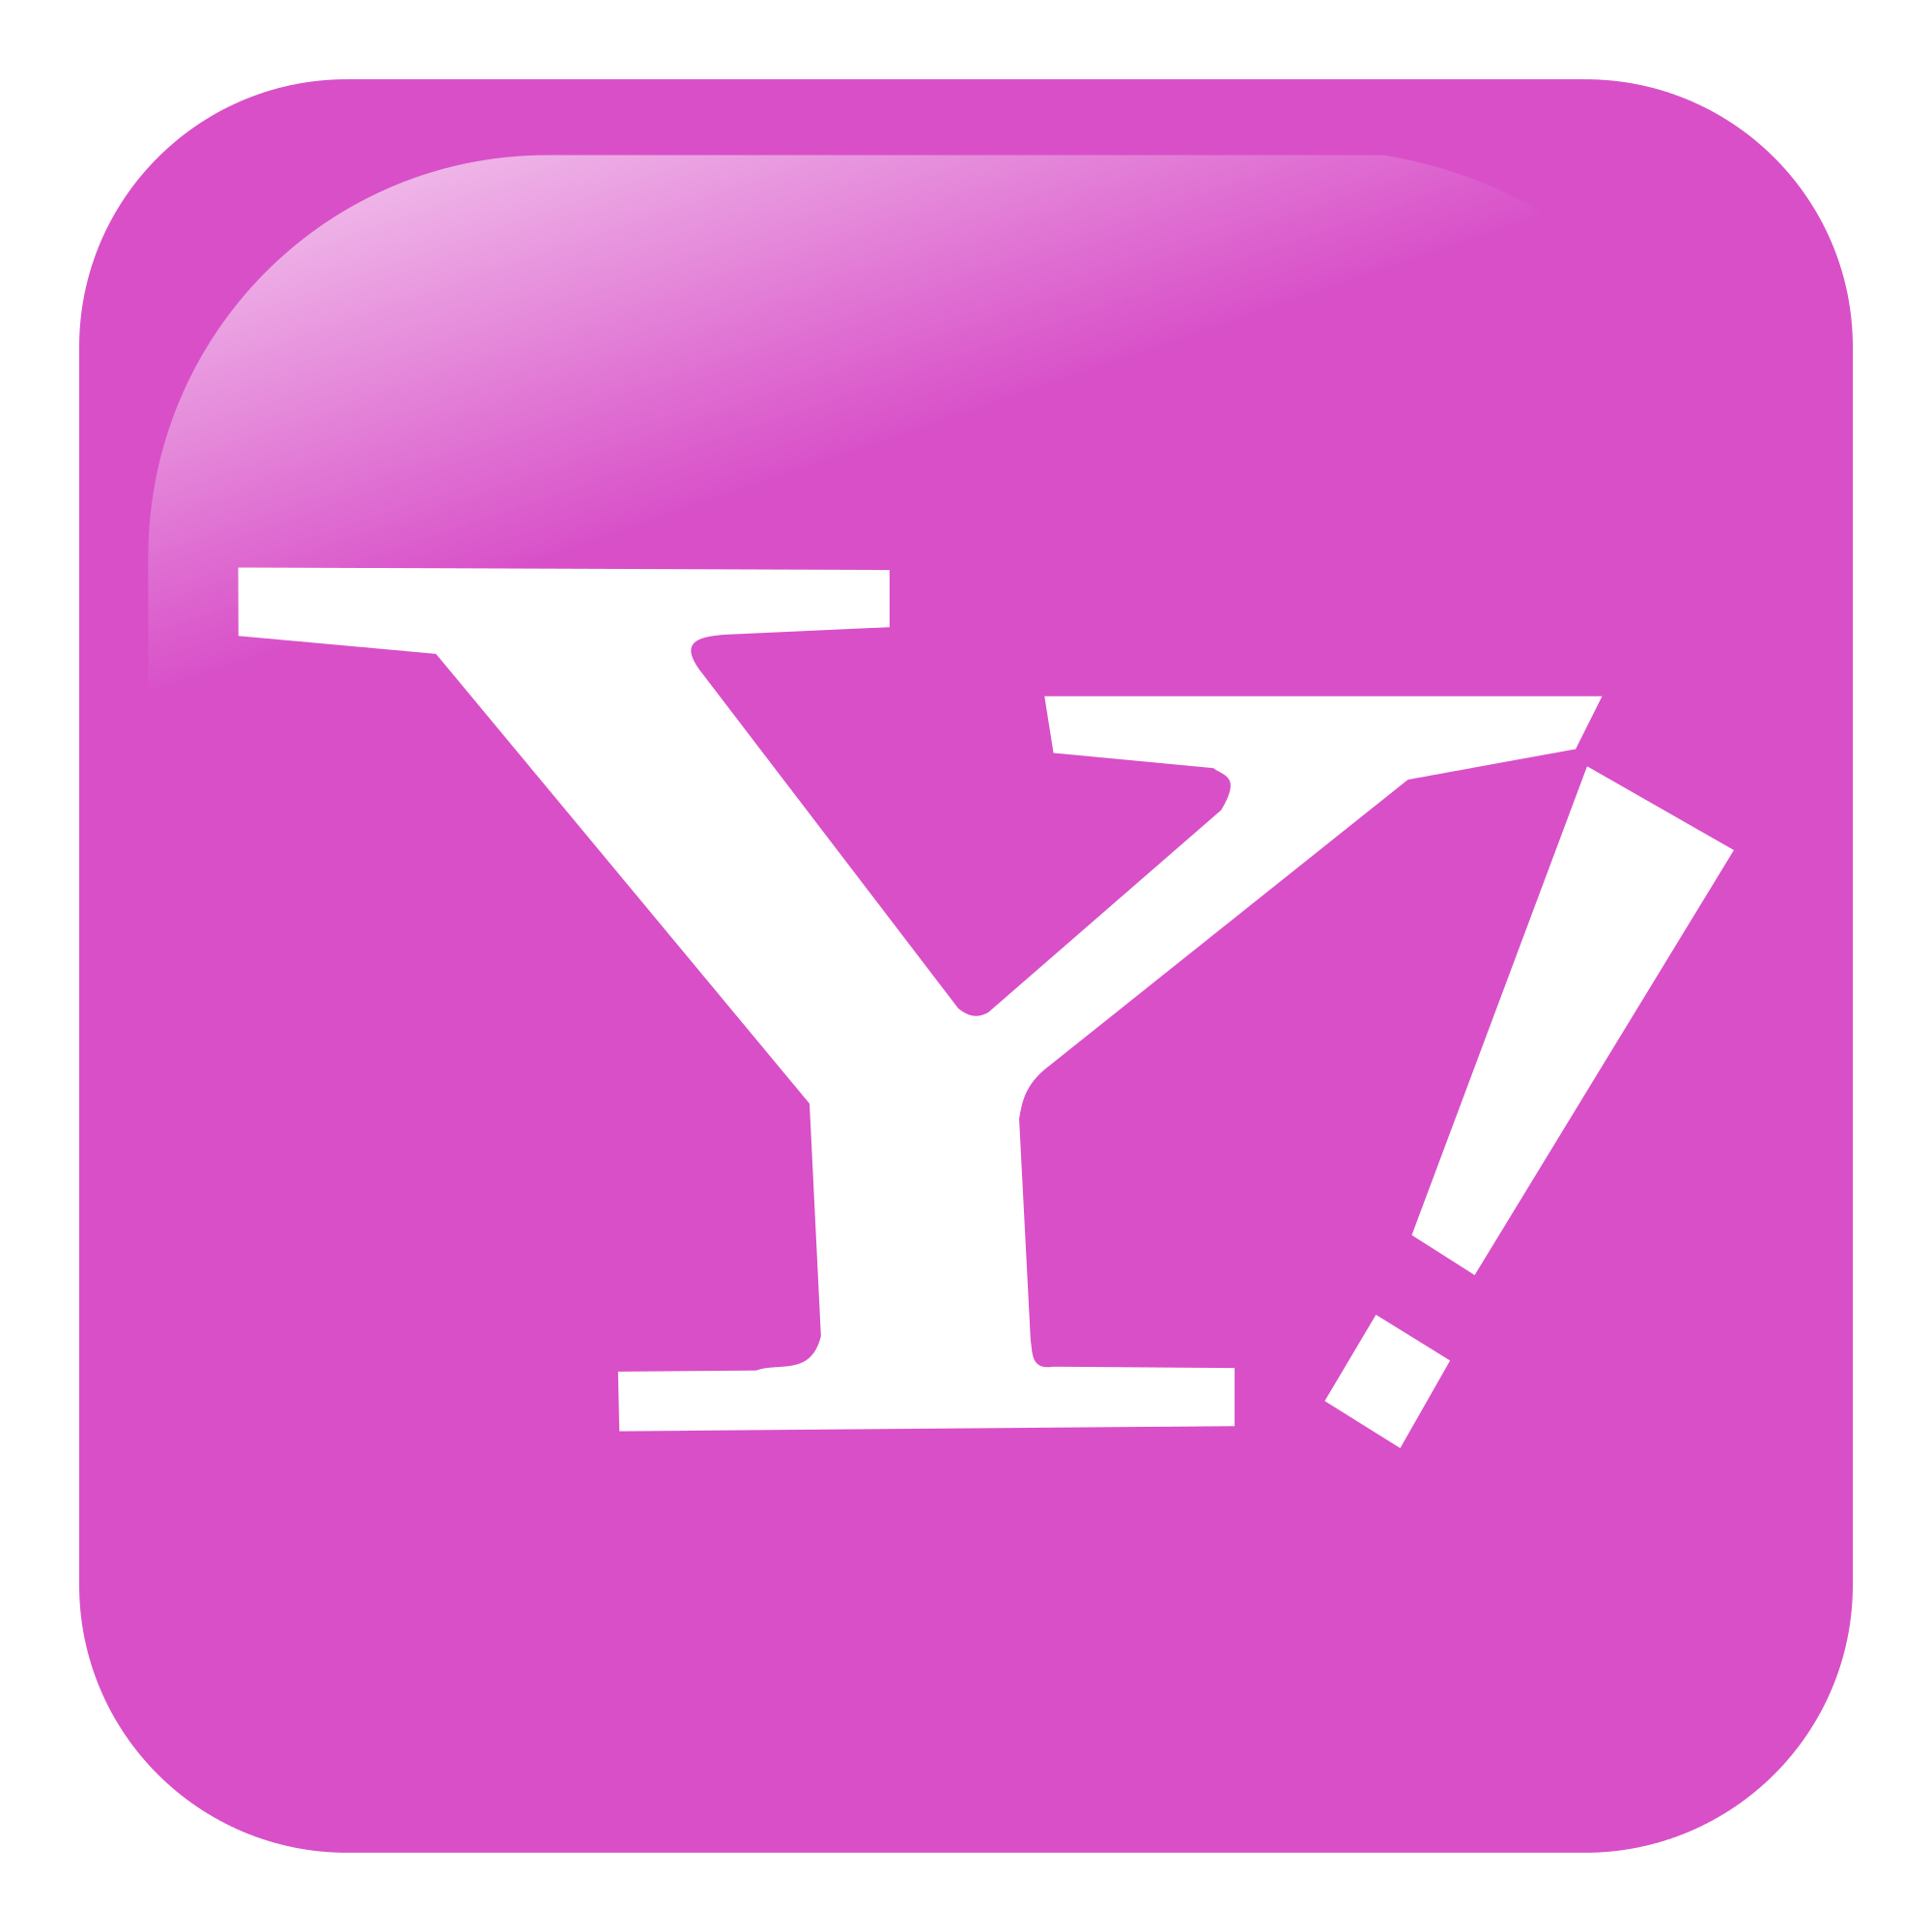 Open Hdpng.com  - Yahoo Old Vector, Transparent background PNG HD thumbnail